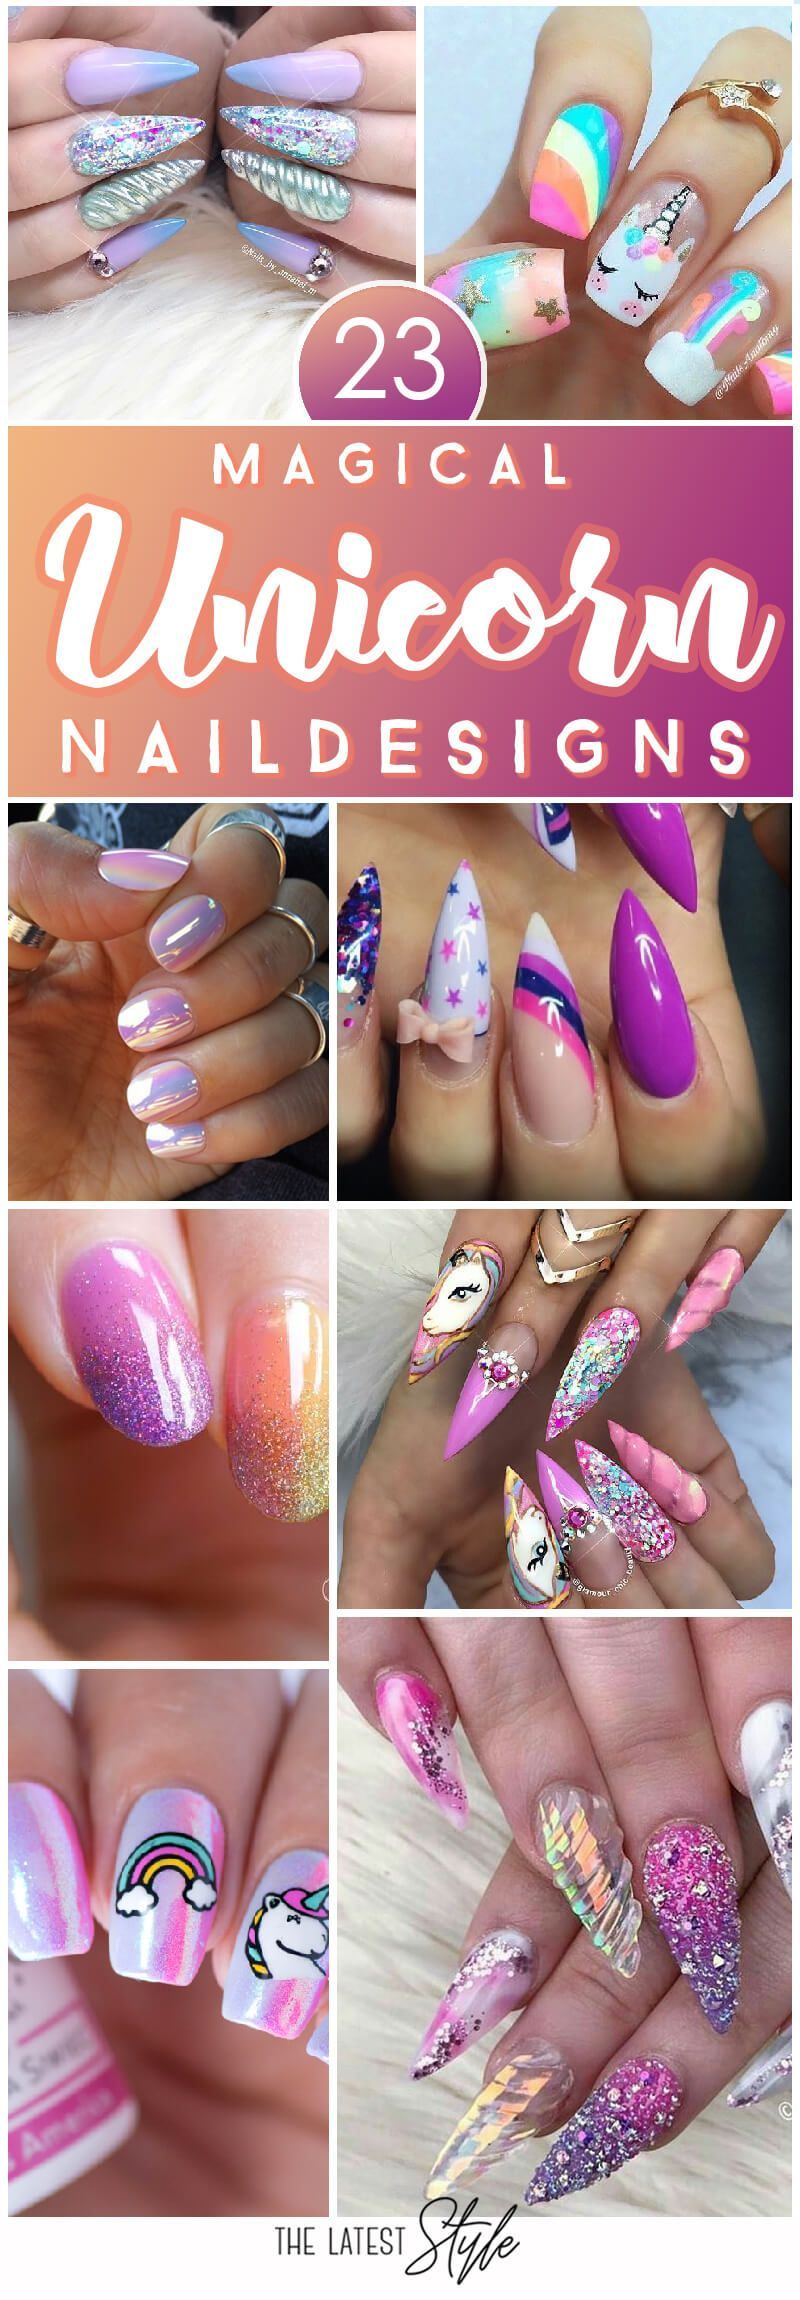 23 Nail Ideas To Try This Spring: 23 Magical Unicorn Nail Designs You Will Go Crazy For